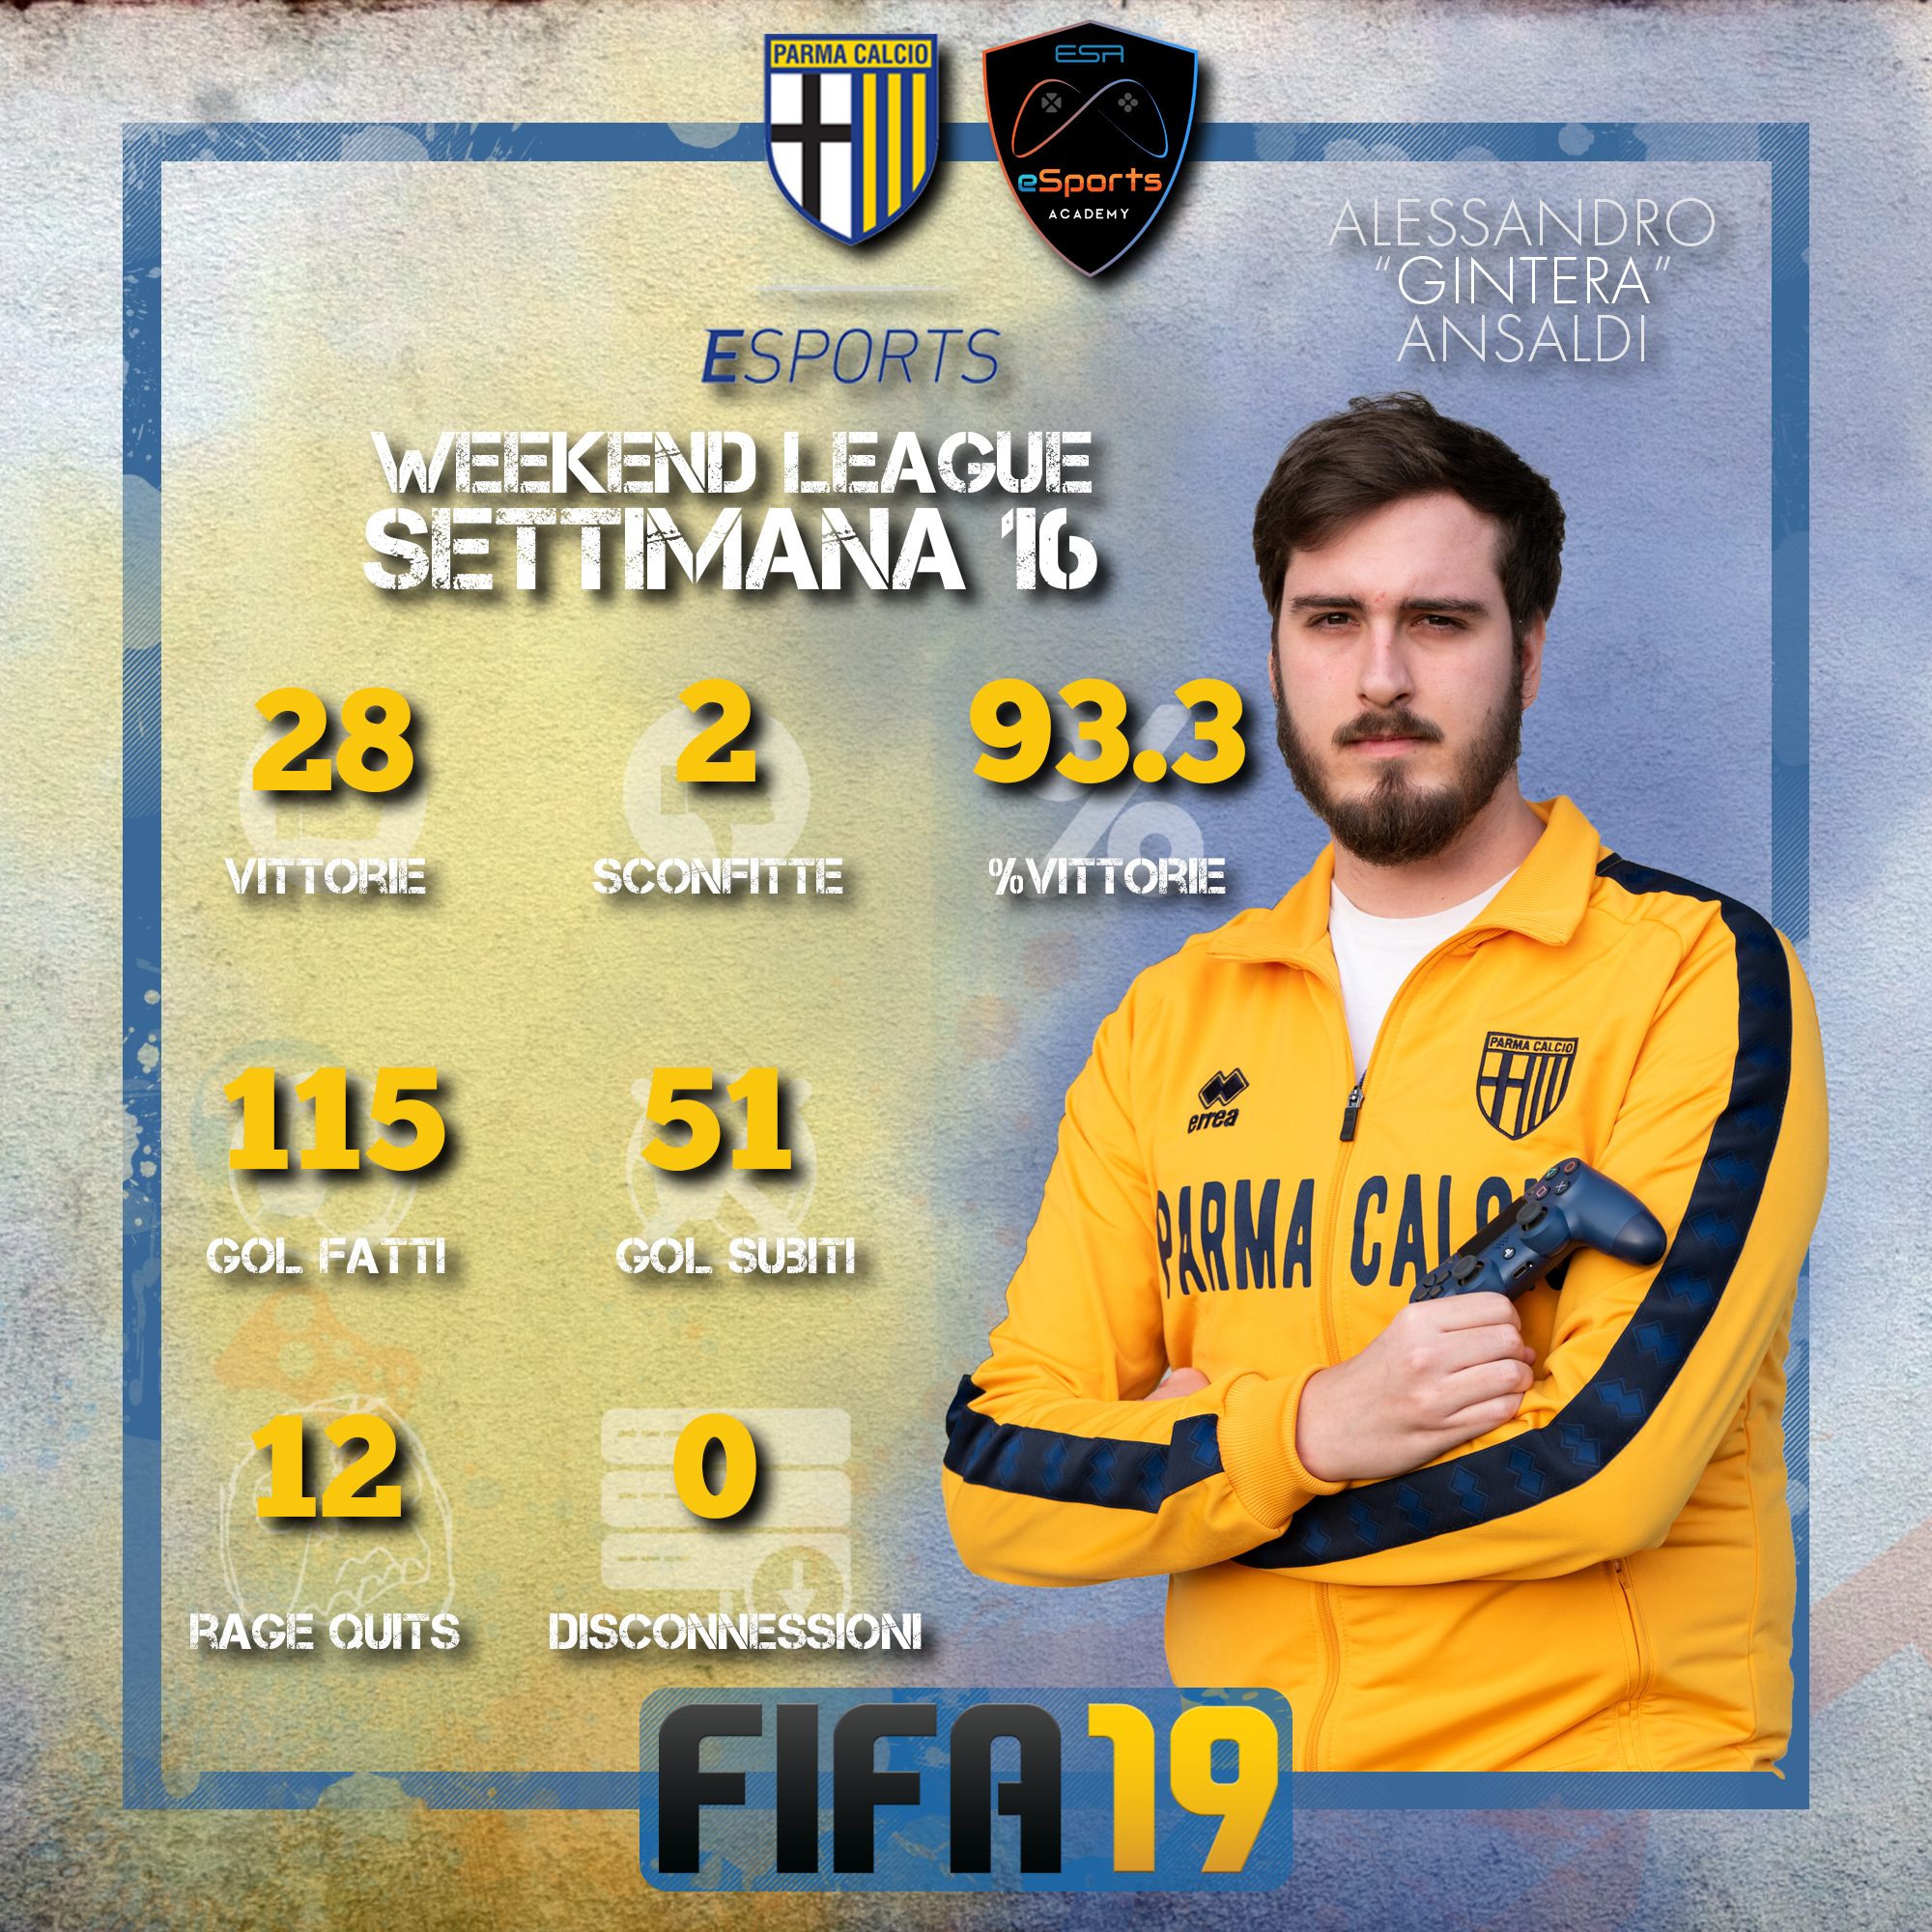 Fifa19_Weekend League_Week16_Gintera.jpg